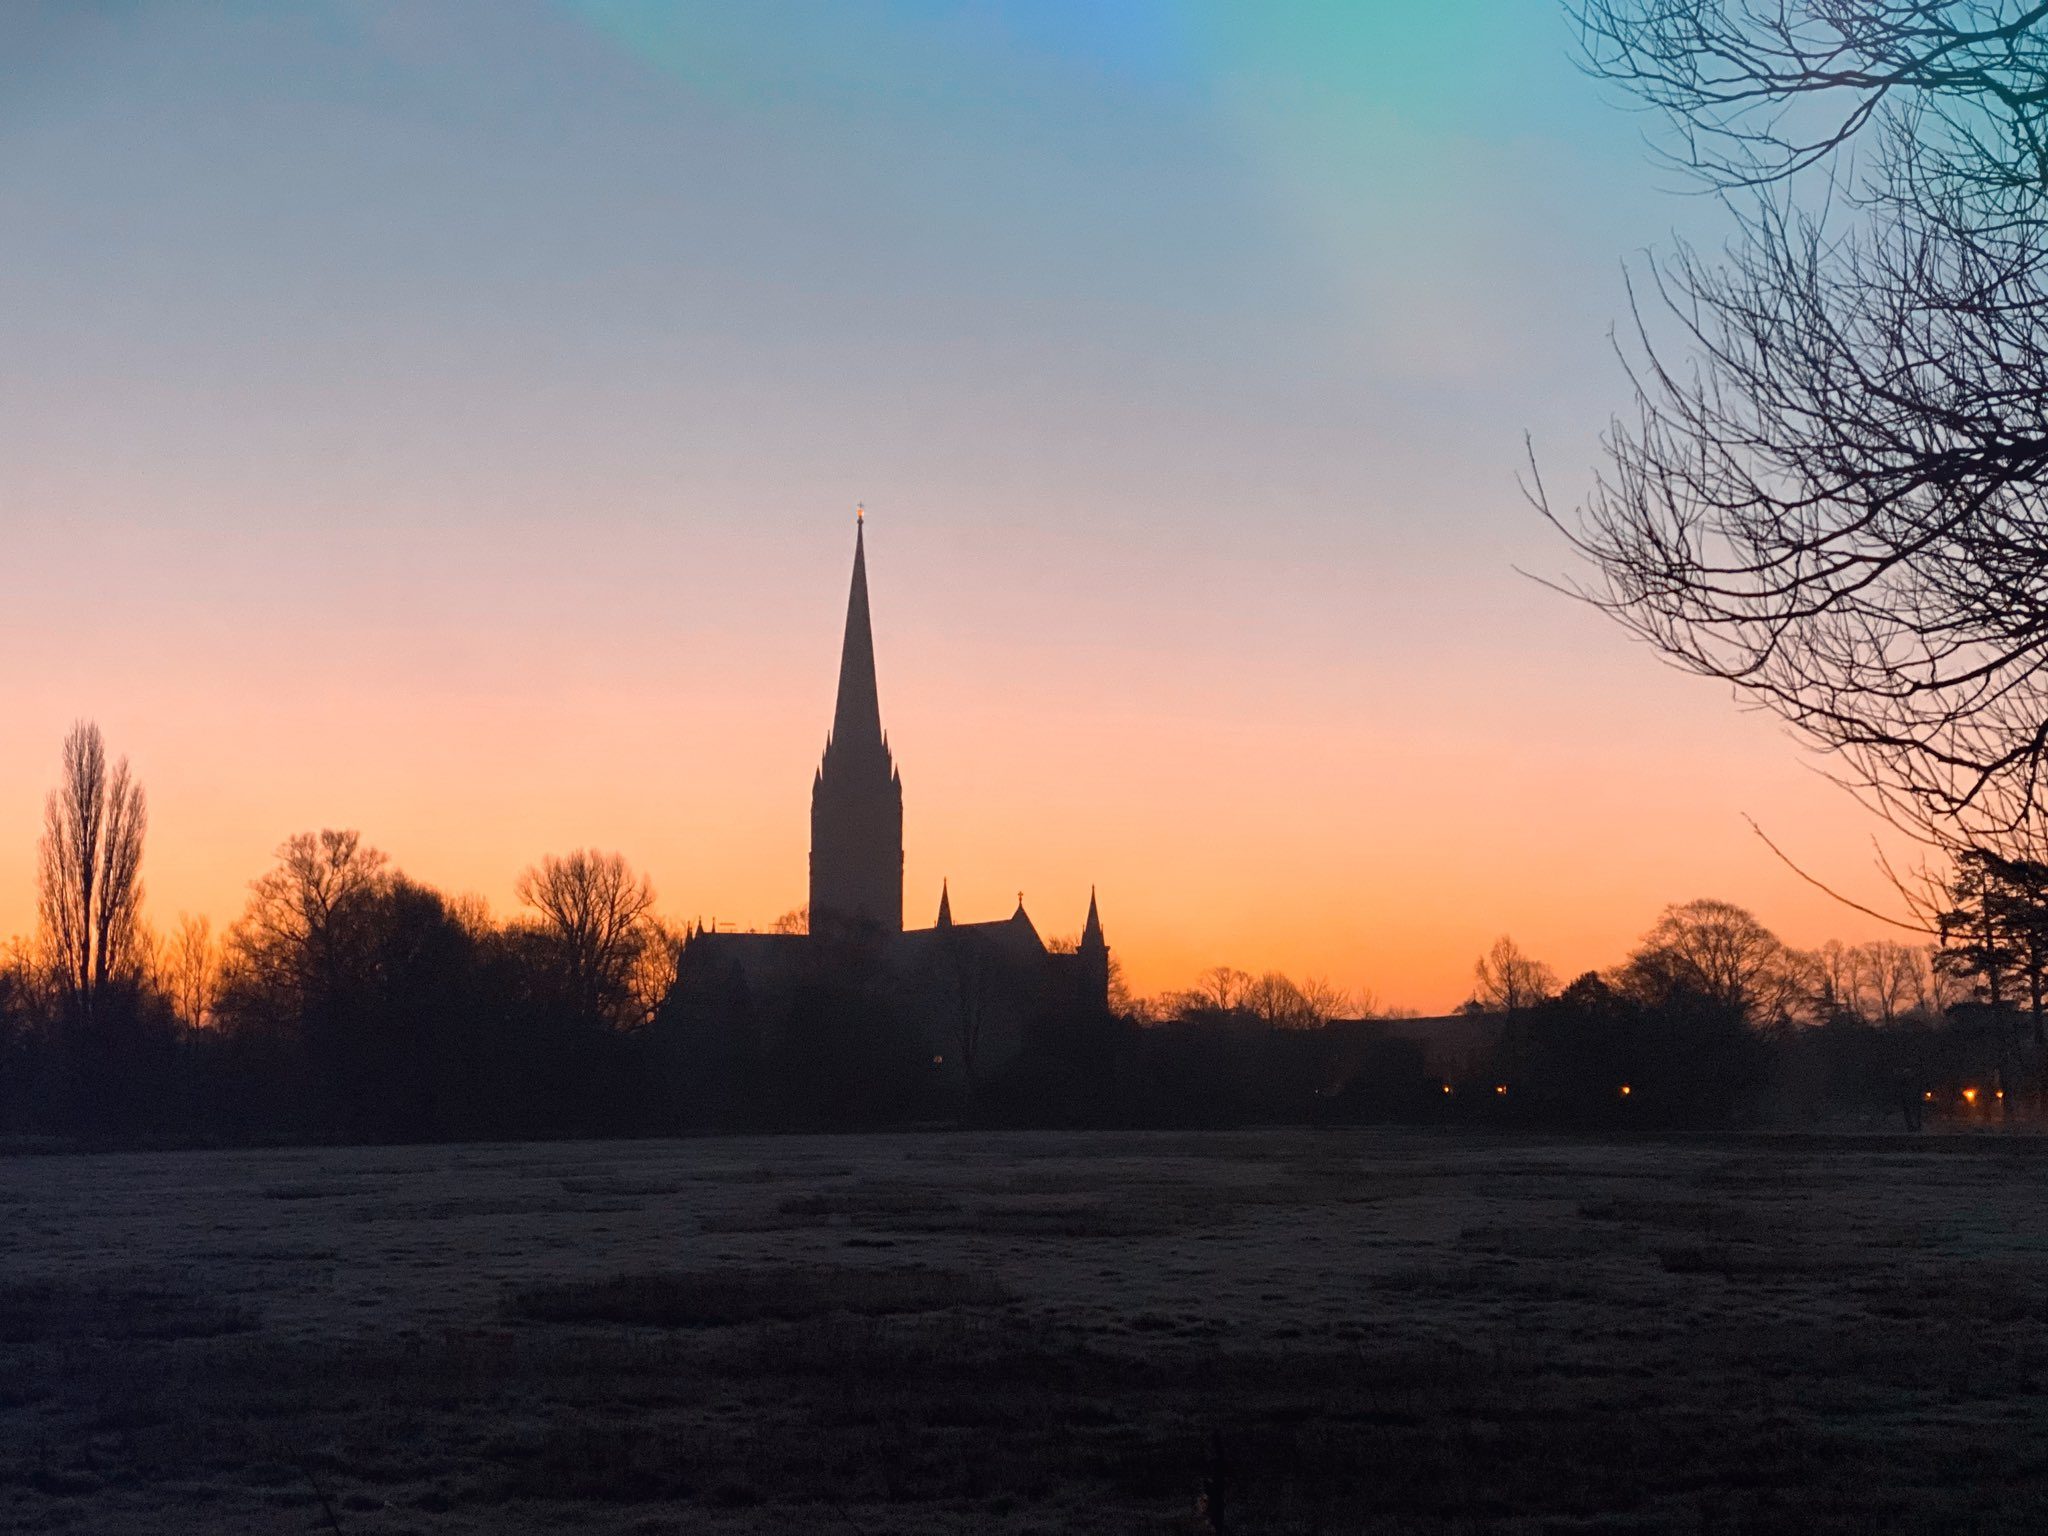 My view right now. Over in Salisbury trying to capture the rising sun behind the spire https://t.co/BBEbFCS1zo